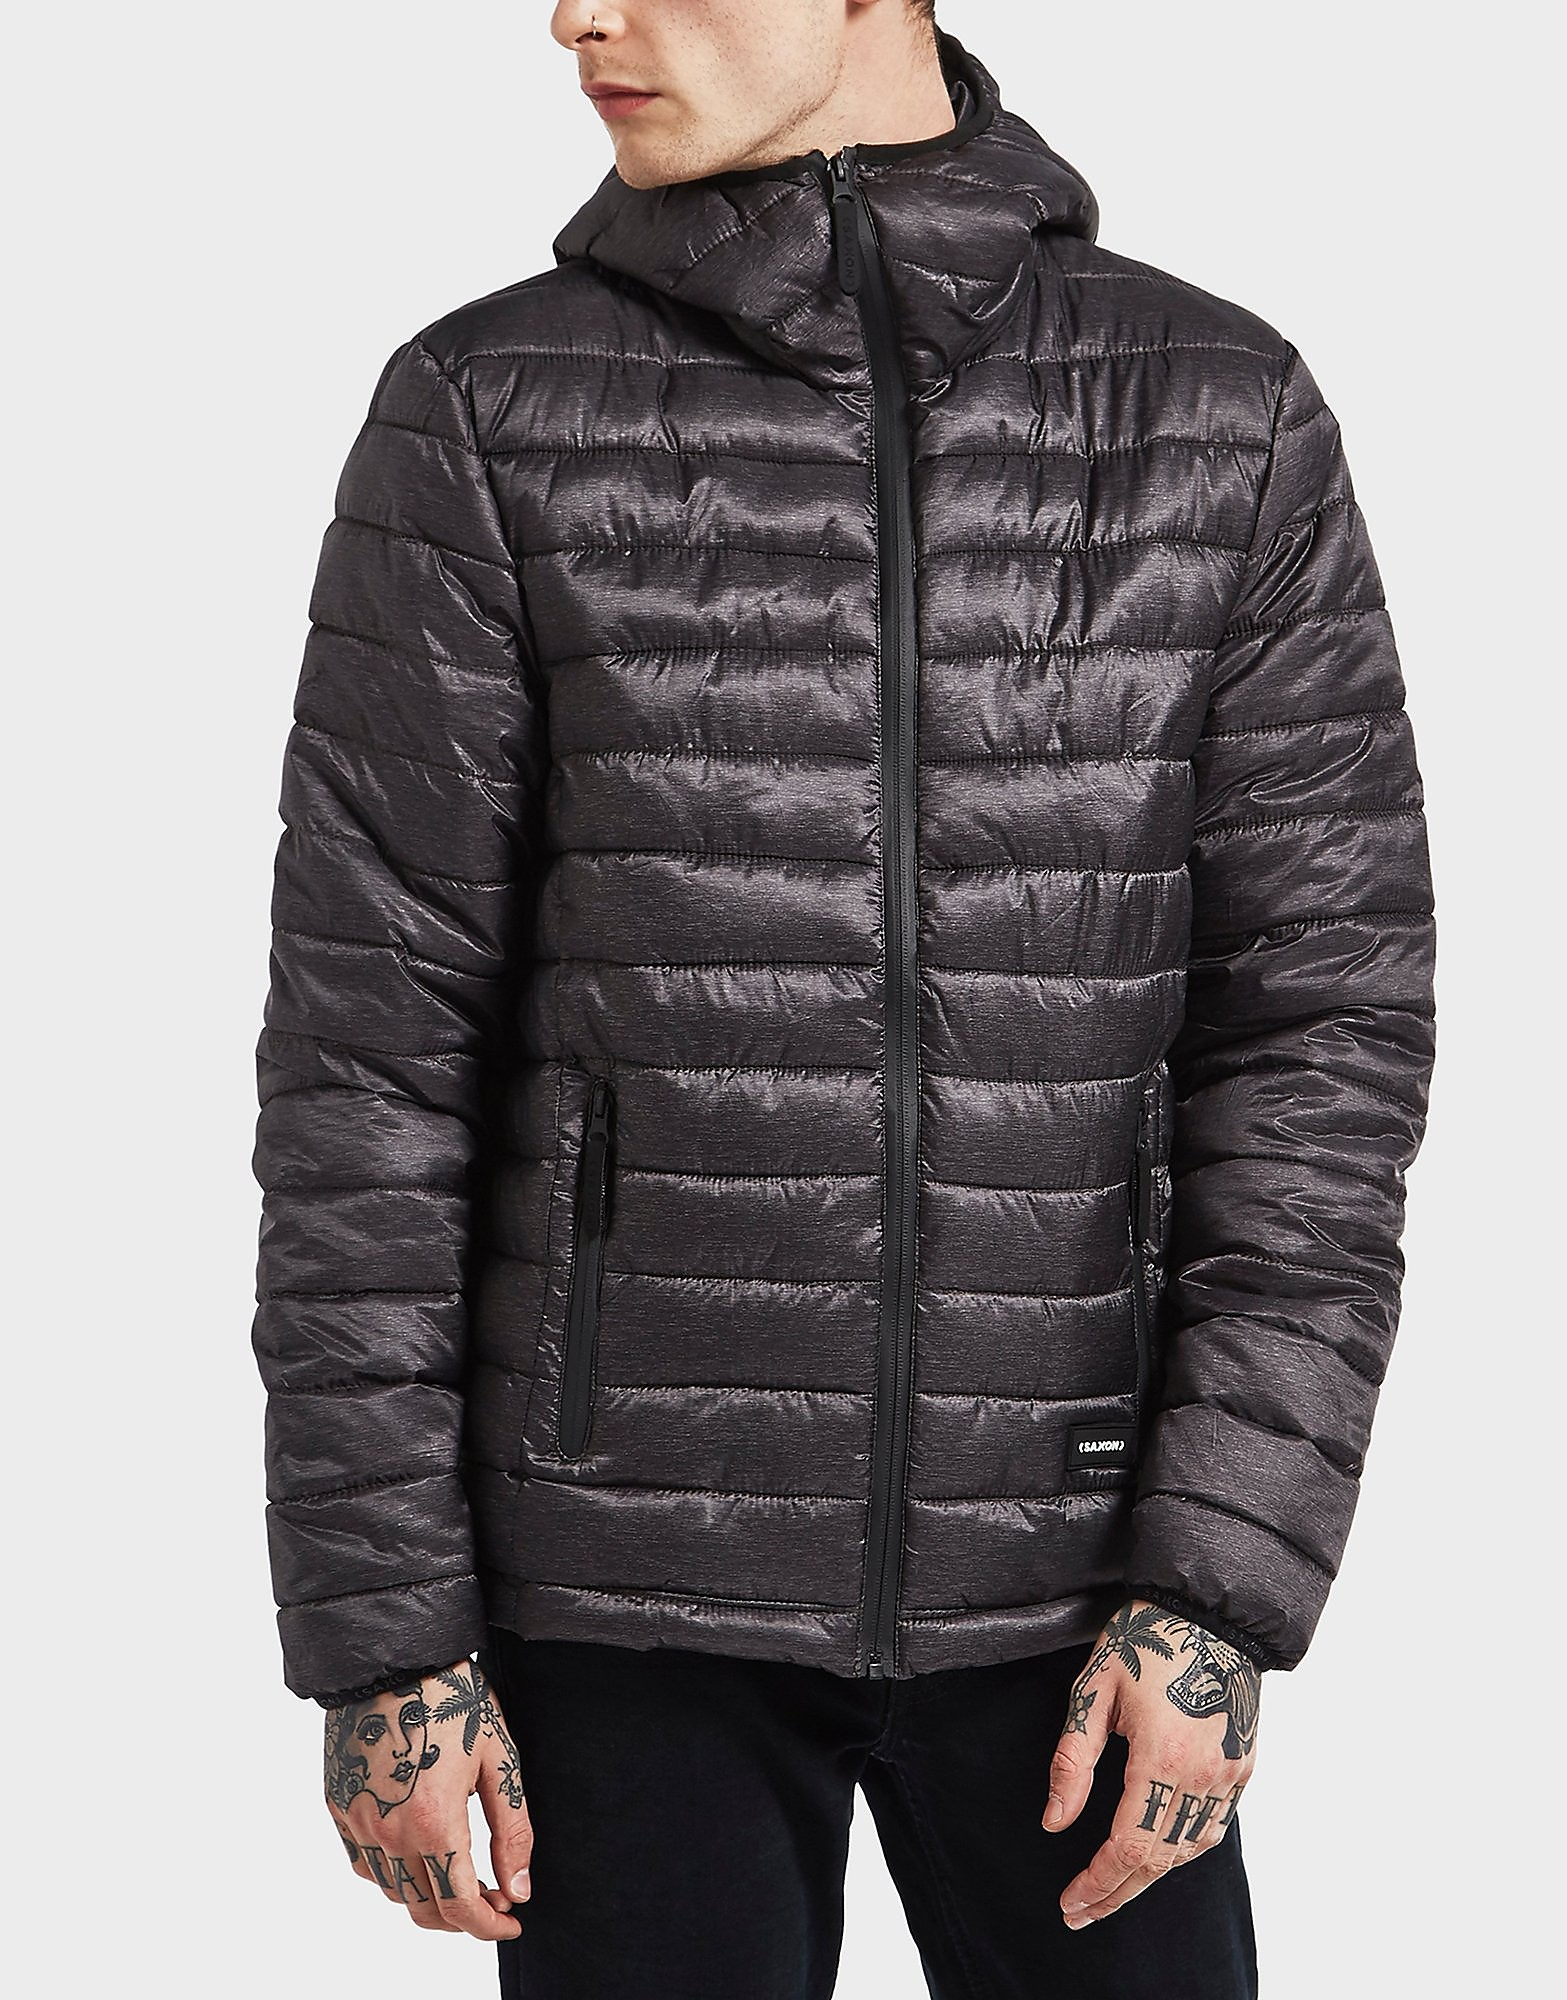 One True Saxon Debar Padded Jacket - Exclusive